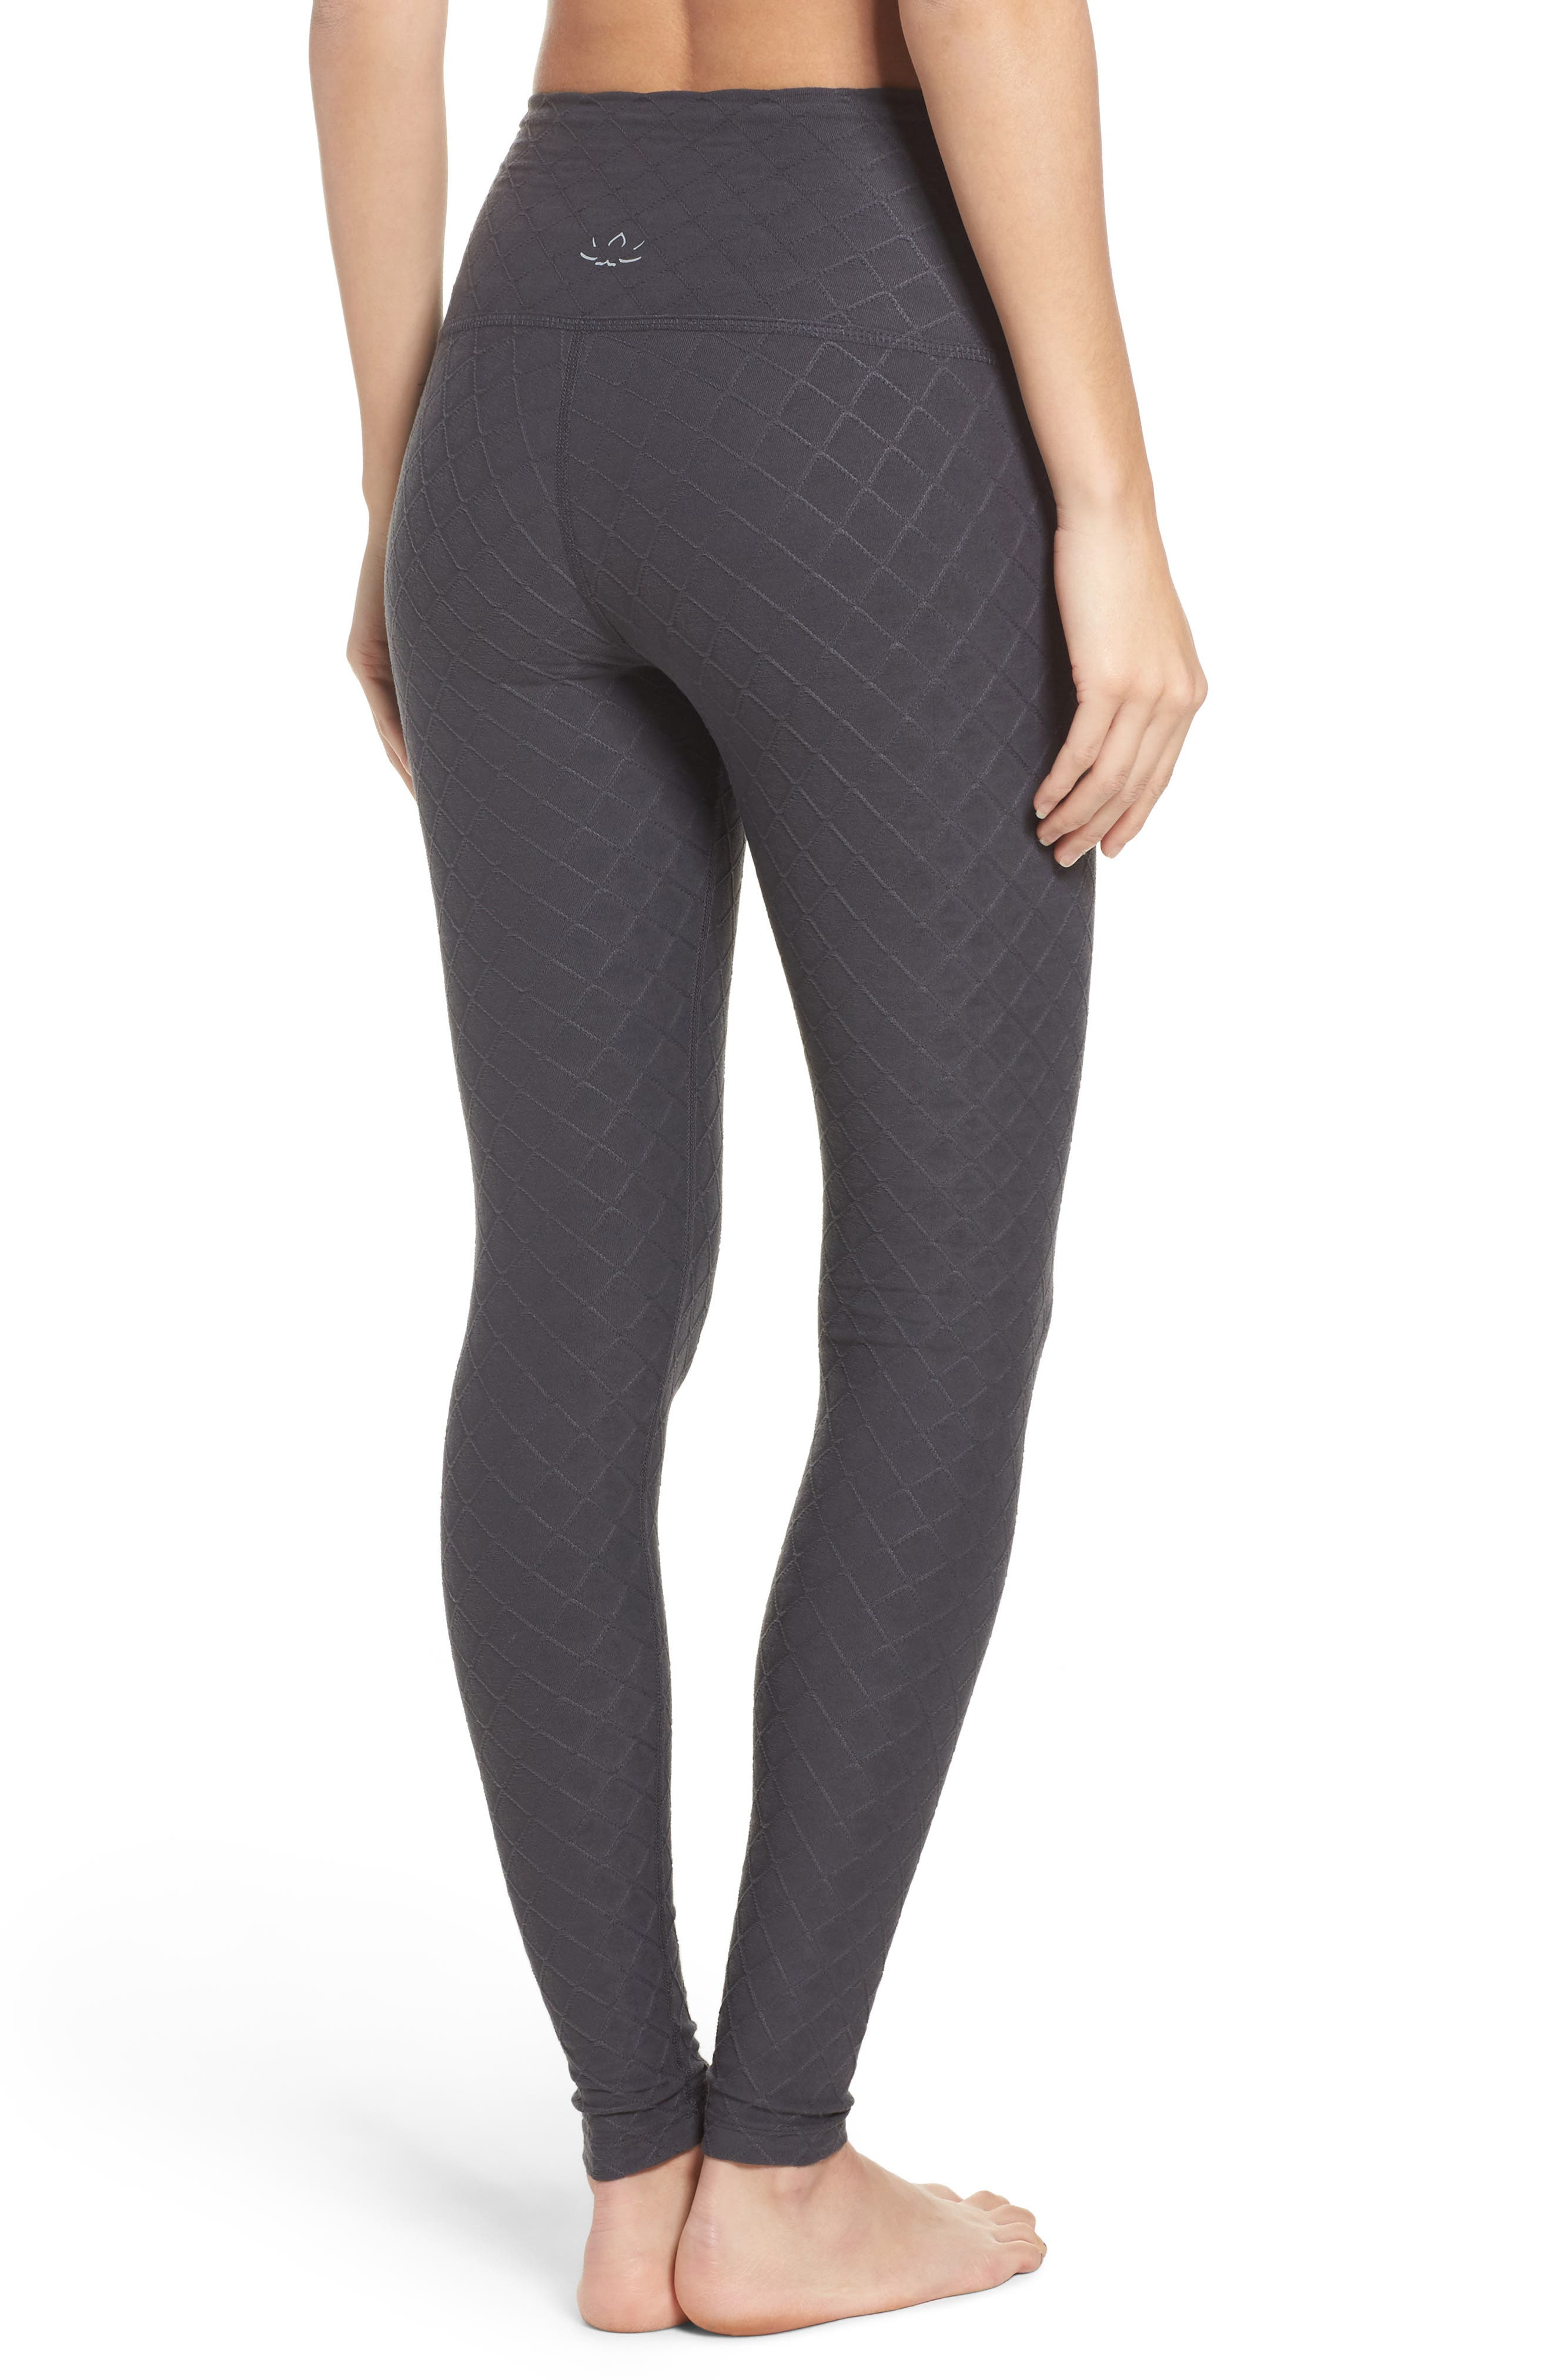 Can't Quilt You High Waist Leggings,                             Alternate thumbnail 2, color,                             023